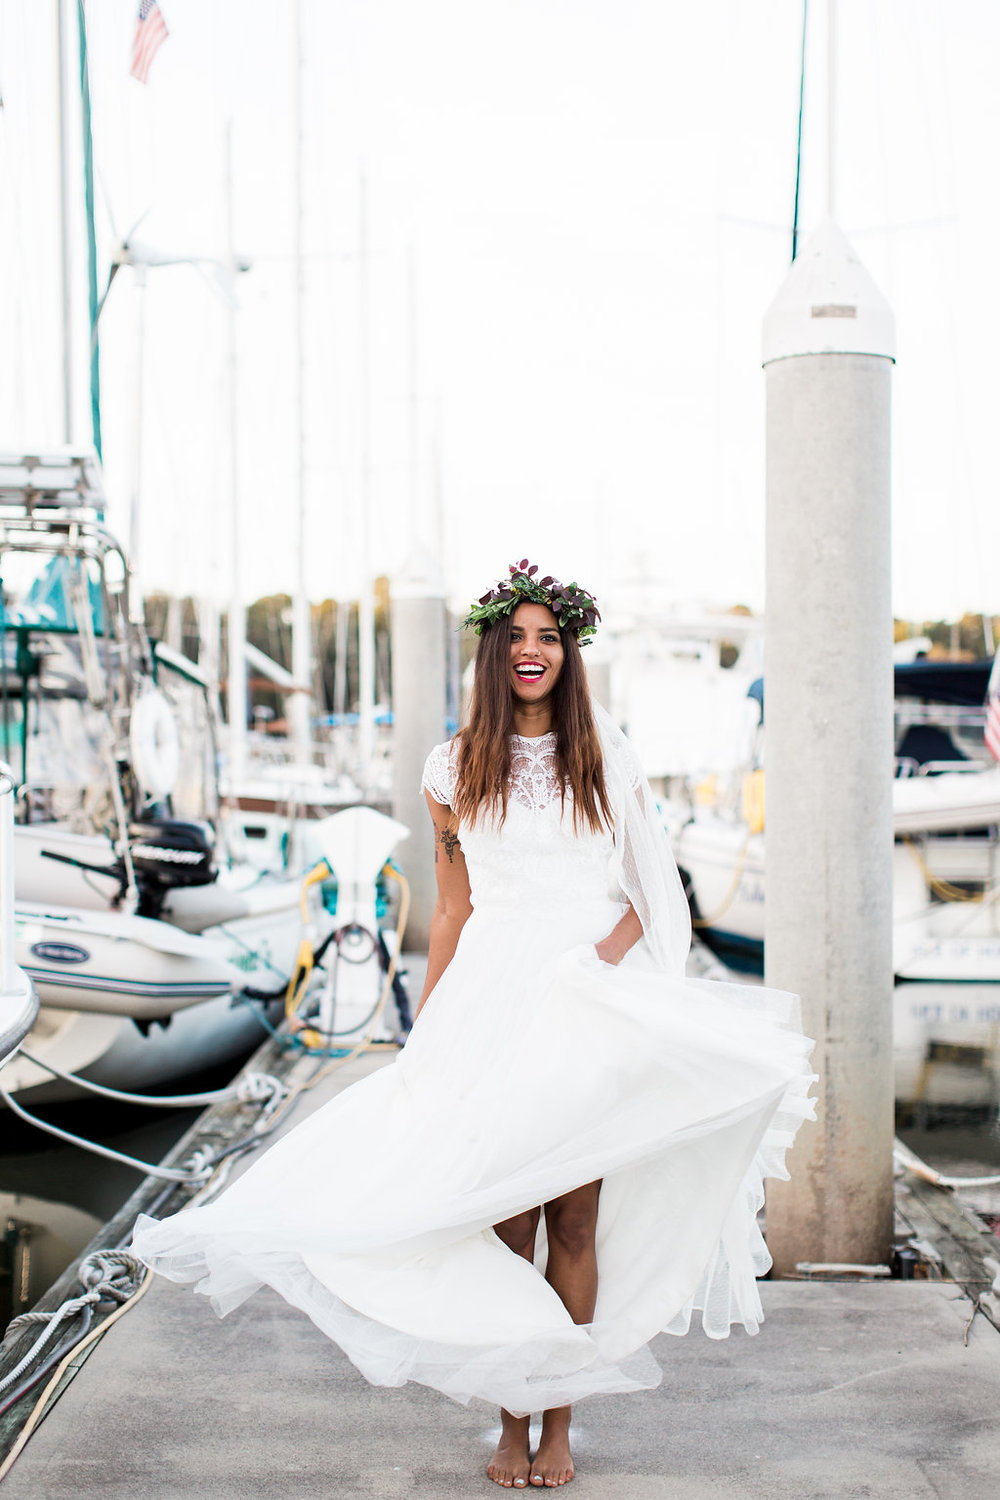 apt-b-photography-ti-adora-7655-point-desprit-wedding-dress-swiss-dot-wedding-dress-marina-wedding-coastal-wedding-ivory-and-beau-bridal-boutique-savannah-wedding-dresses-savannah-bridal-gowns-adele-amelia-savanah-florist-15.jpg